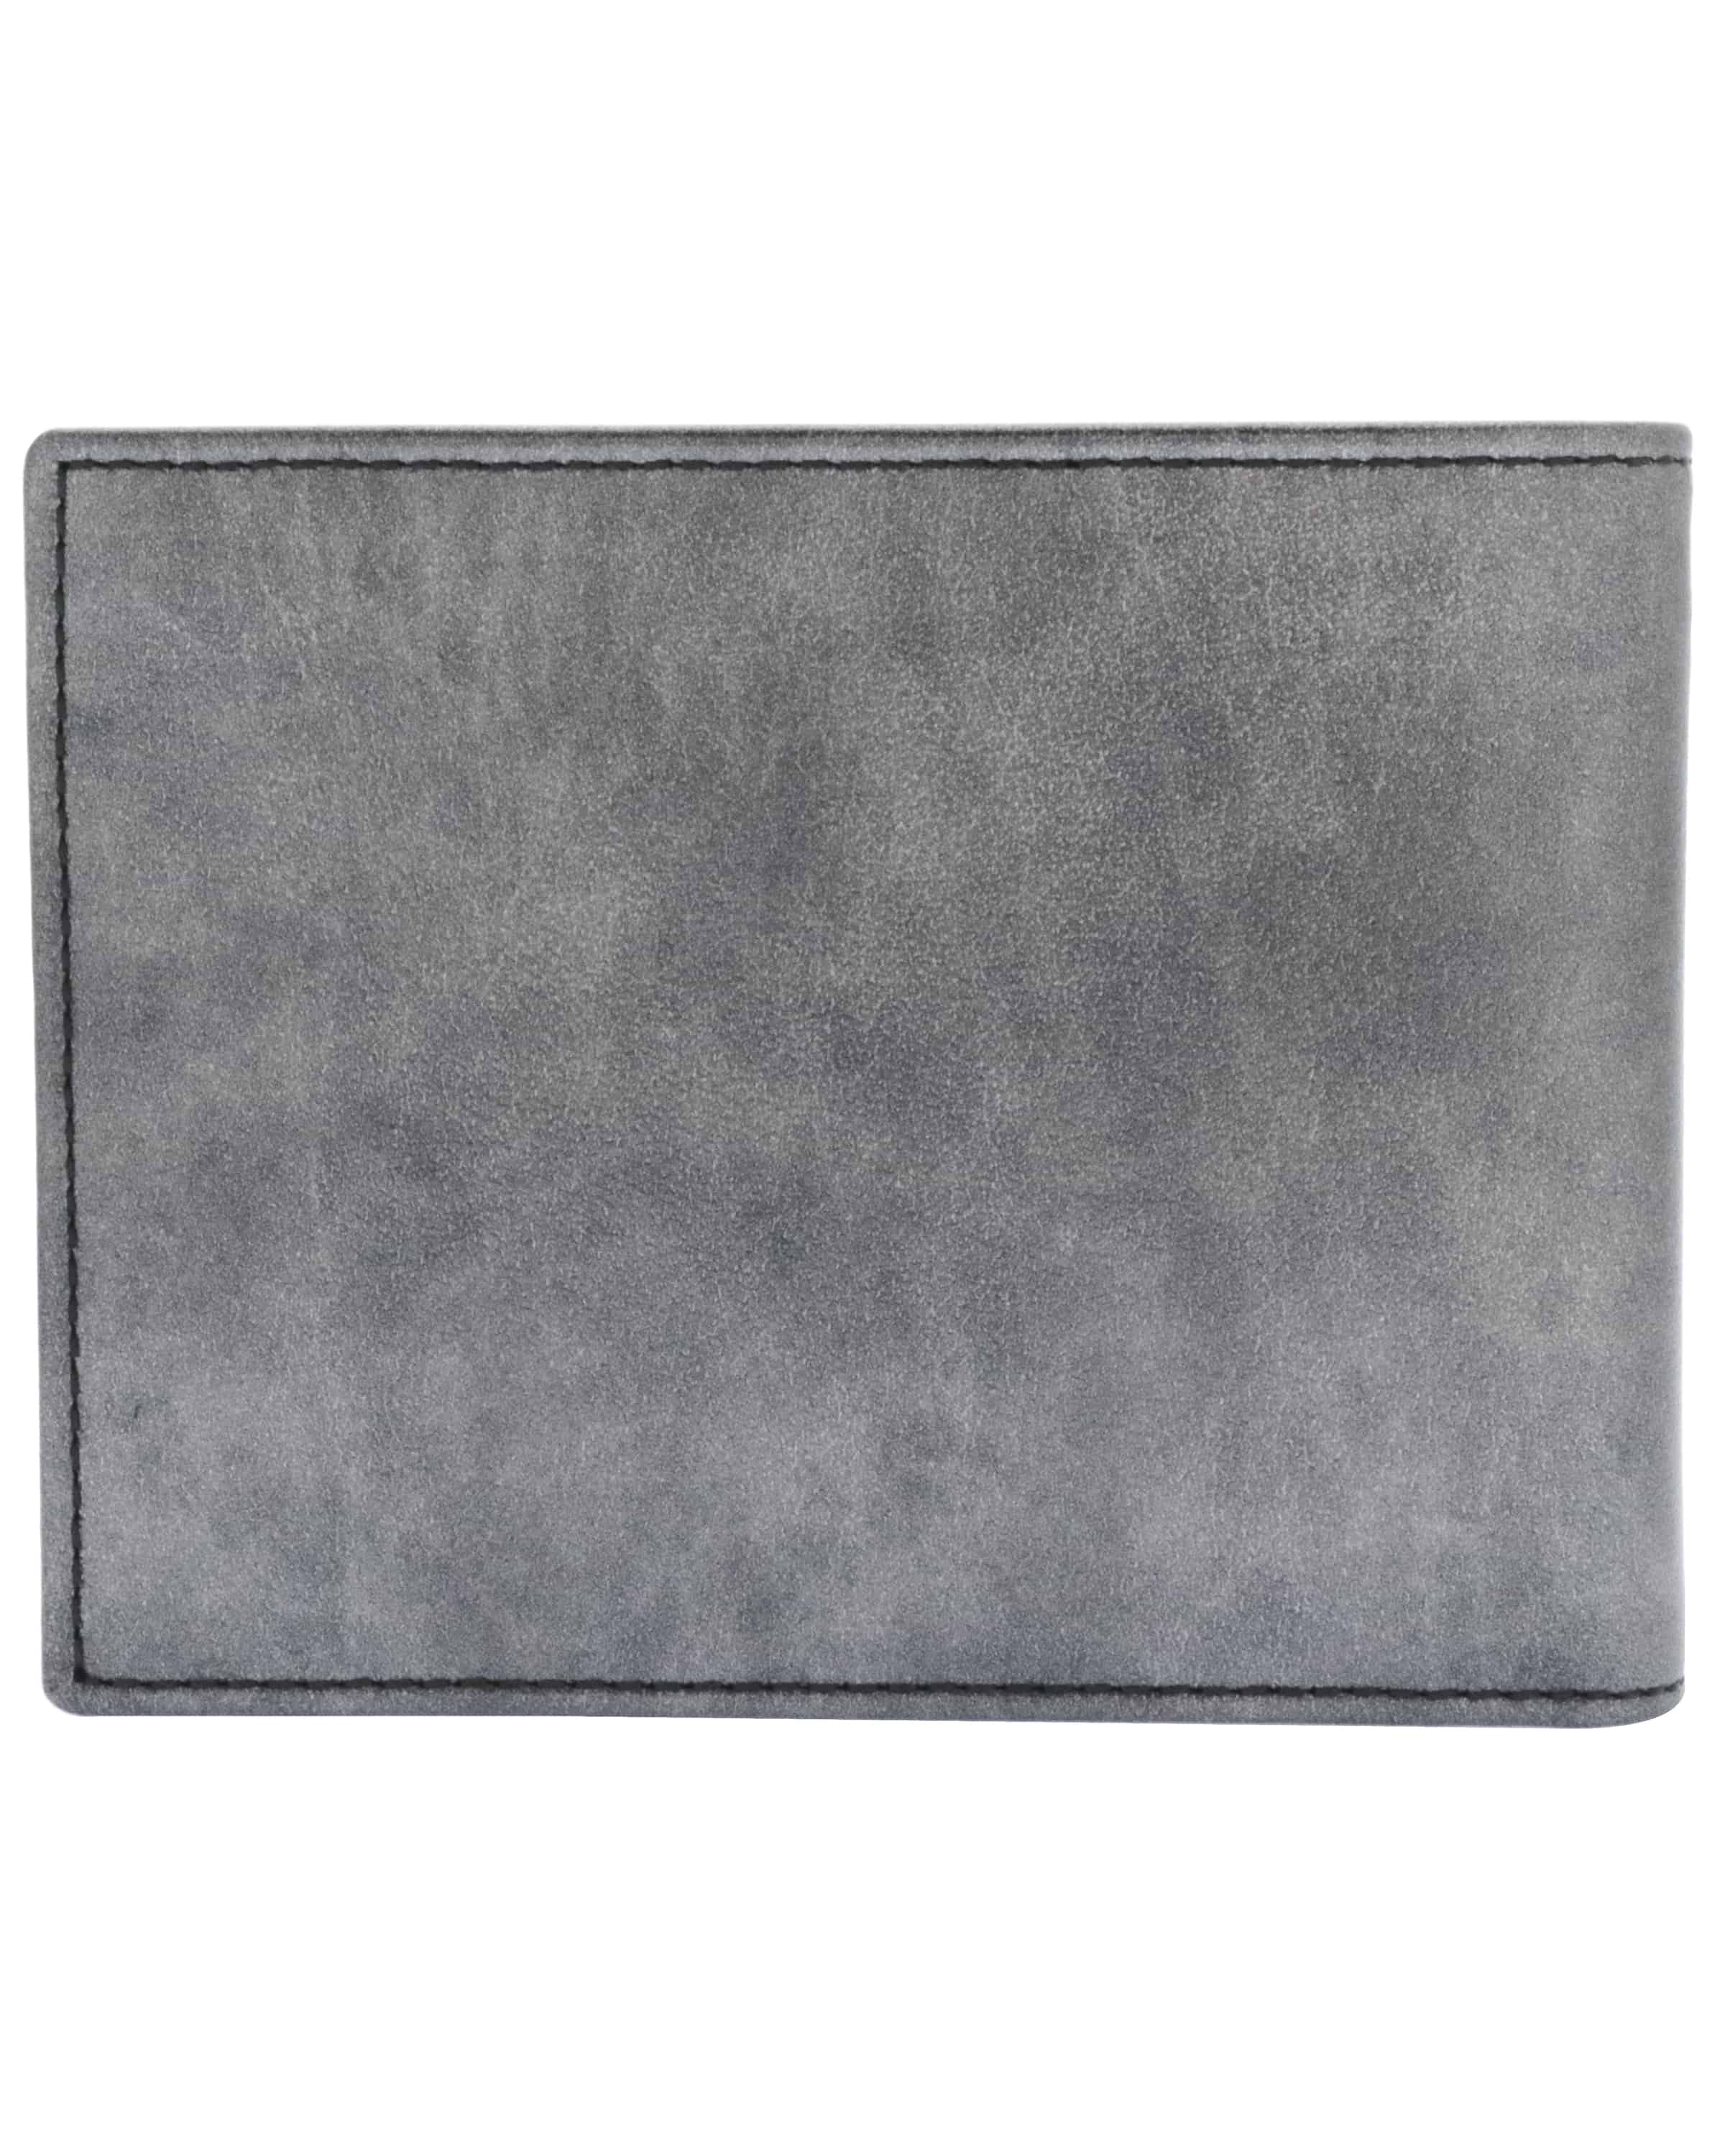 """S.T. Dupont - """"star Wars"""" Silver Leather Billfold - Retail $295.00 180251"""